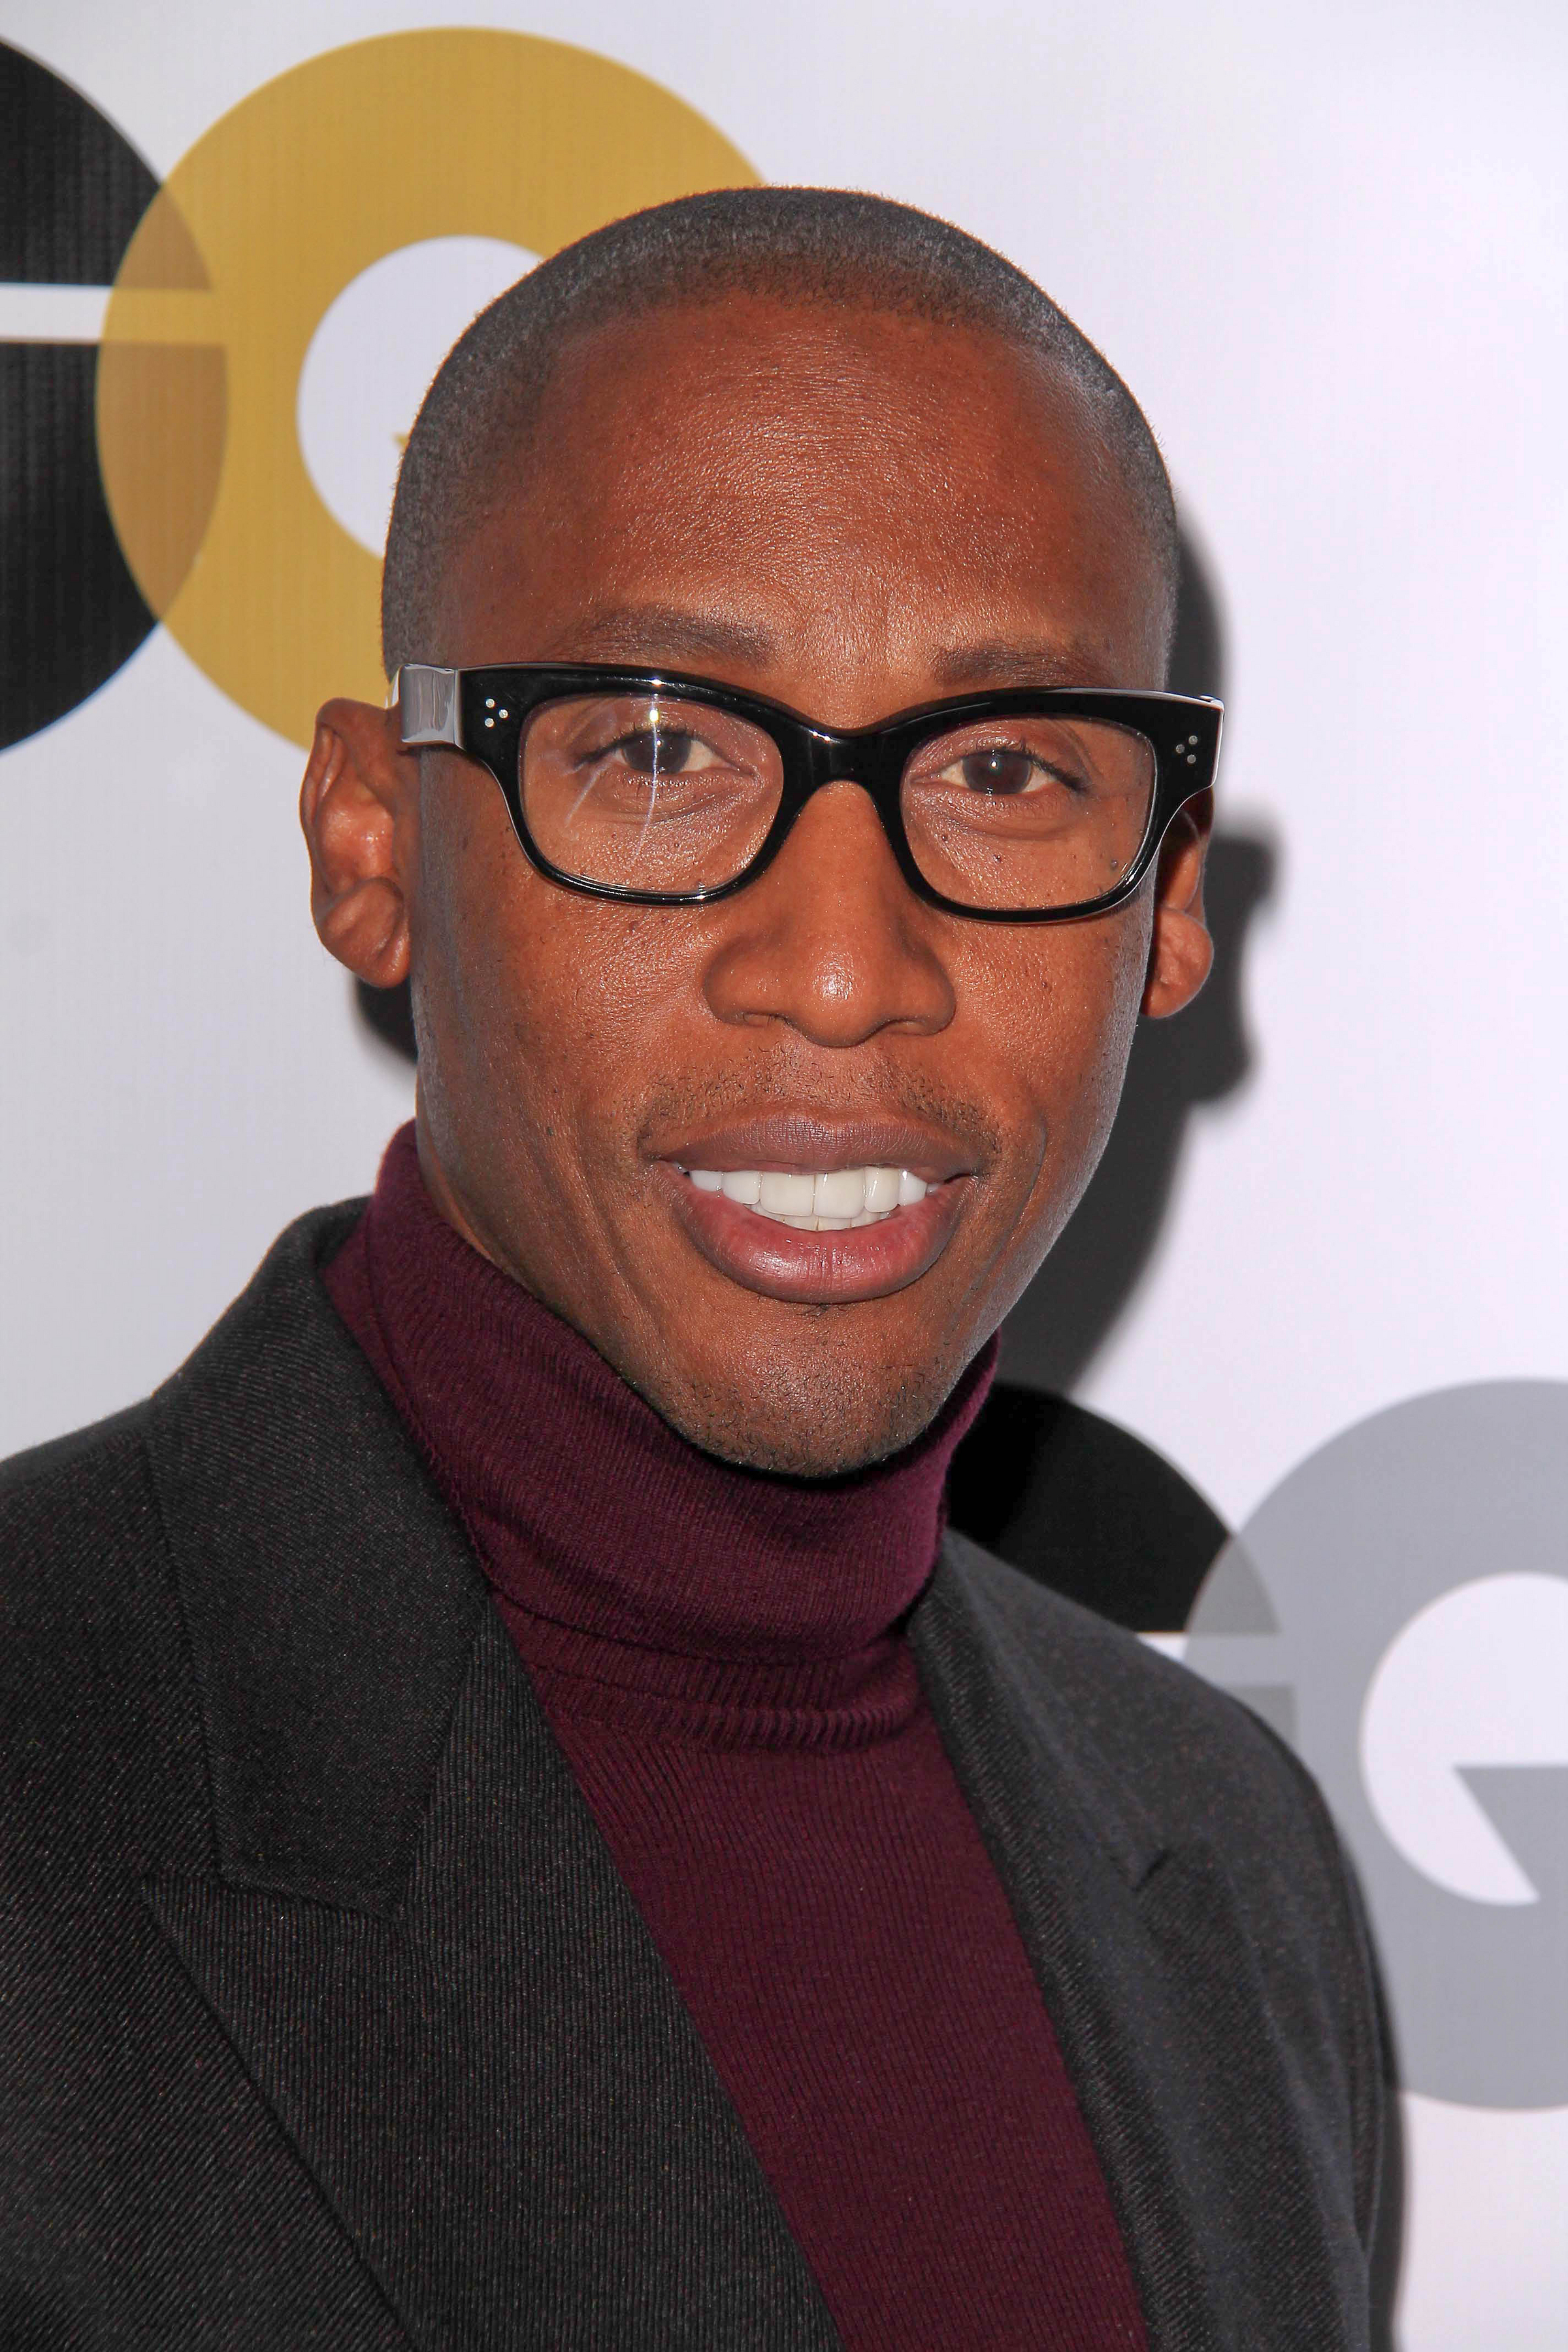 Raphael Saadiq Returns With New Album In Honor Of Brother Who Died